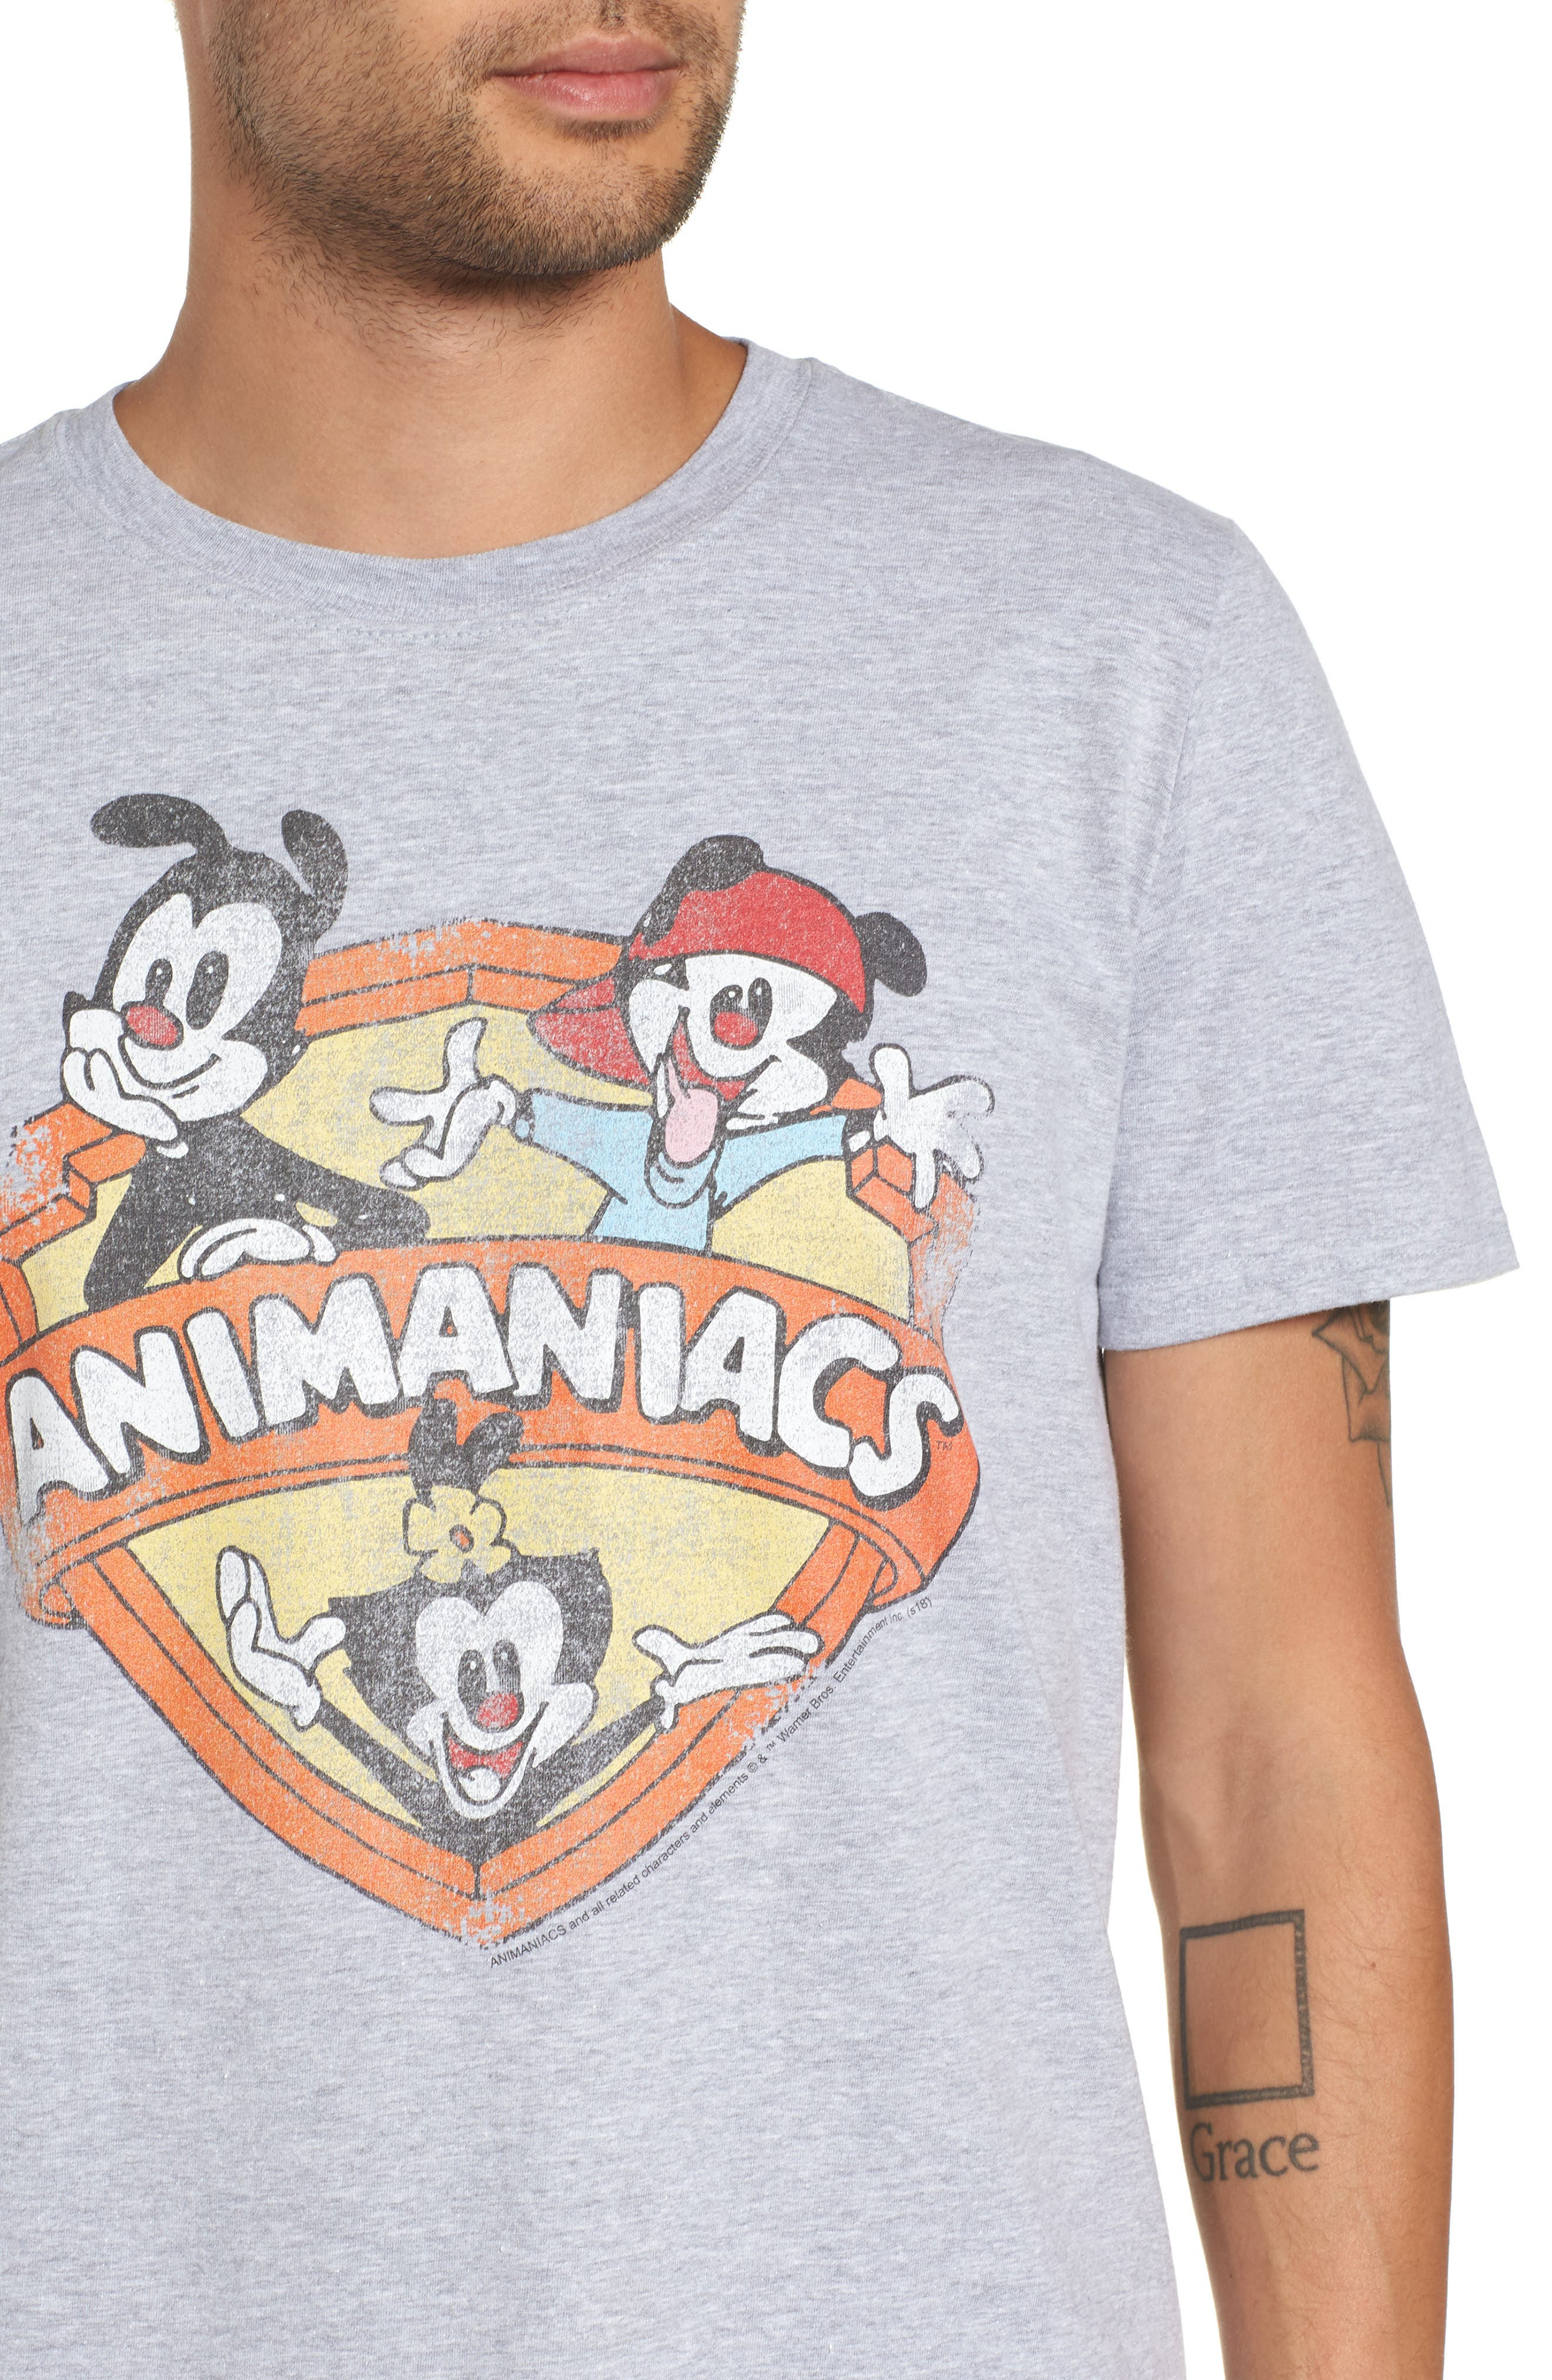 Animaniacs Graphic T-Shirt,                             Alternate thumbnail 4, color,                             050